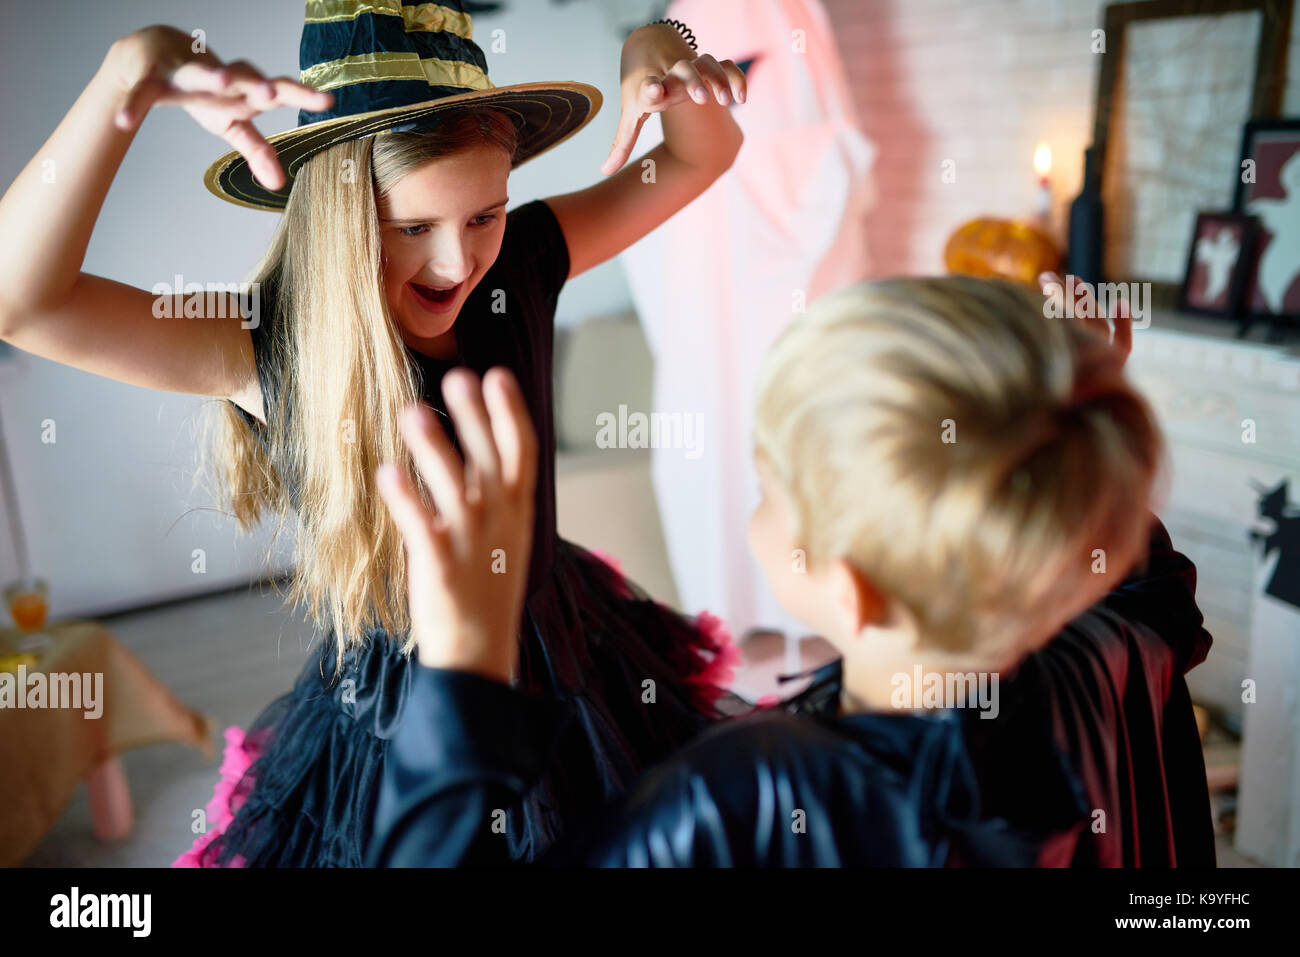 Funny emotional children in Halloween costumes doing role-playing and scaring each other imaging that they are monsters - Stock Image